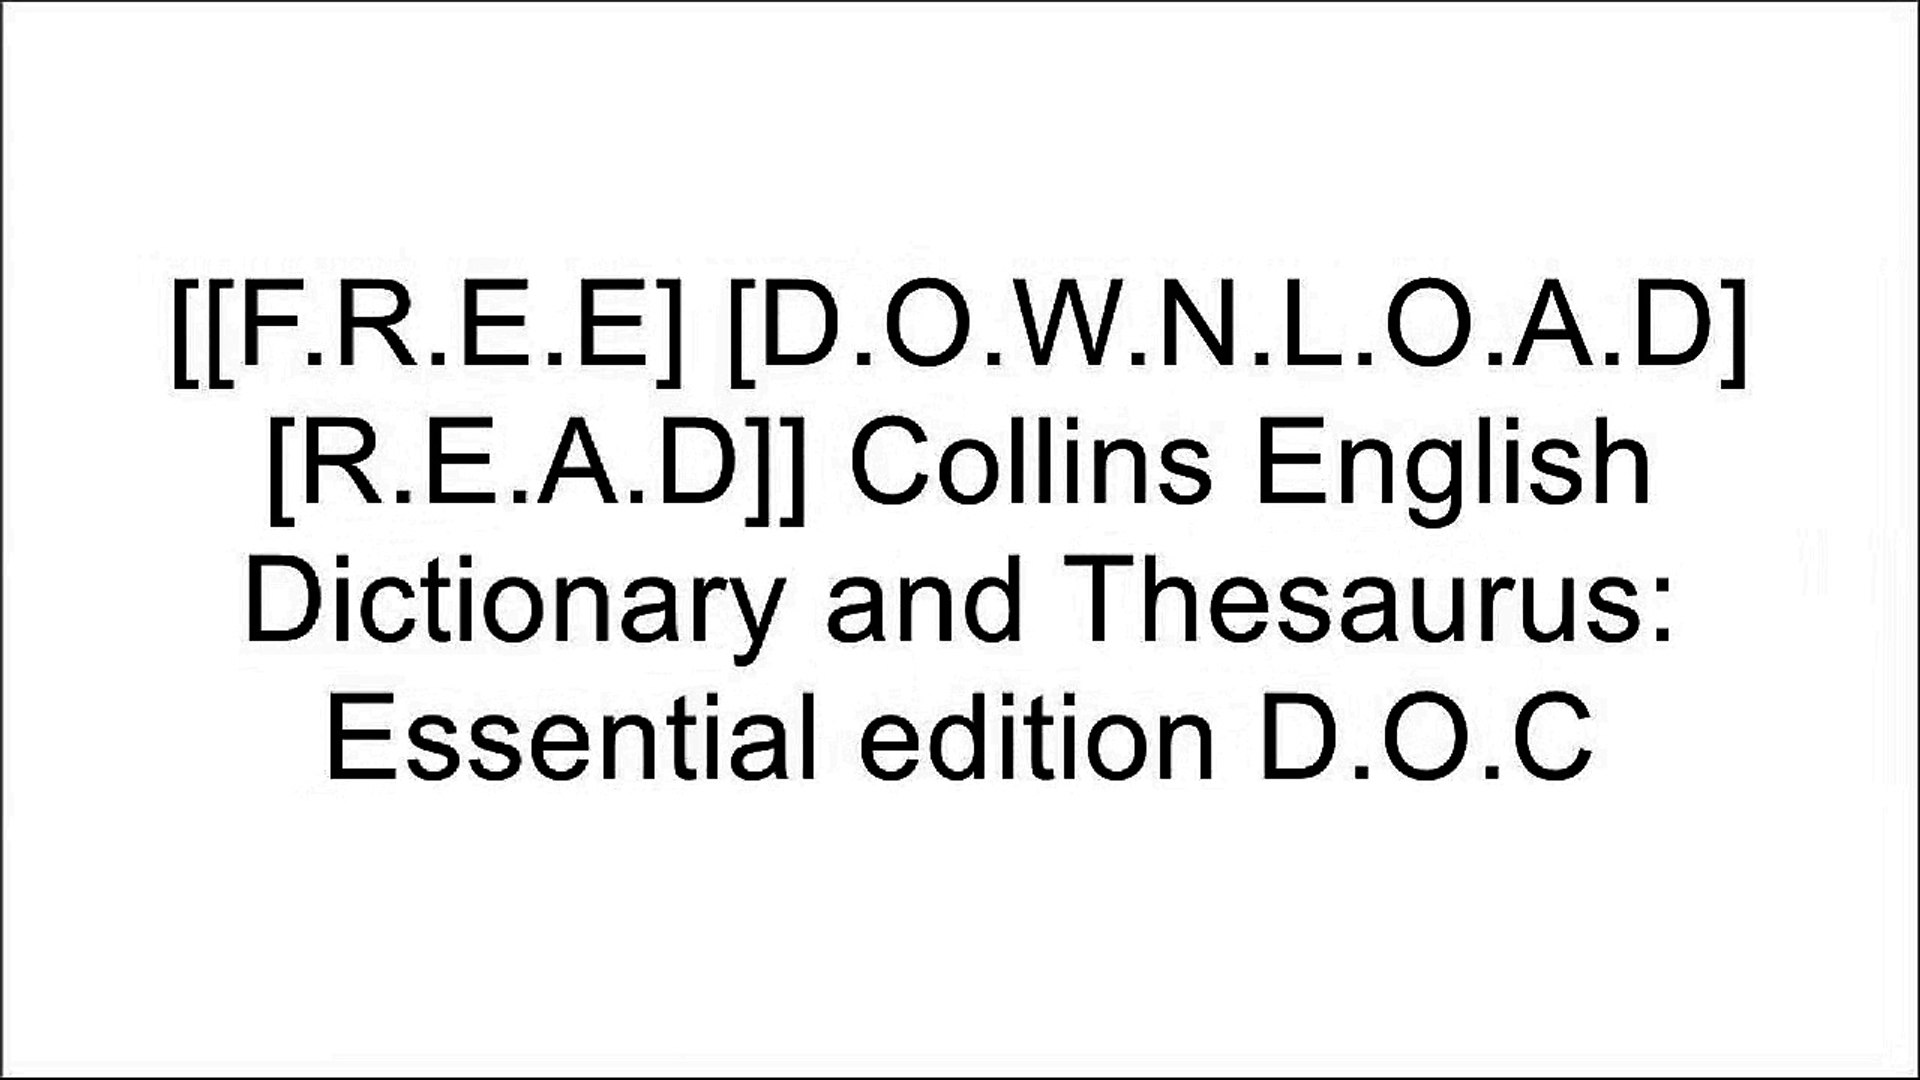 [gxsIt.[F.r.e.e] [D.o.w.n.l.o.a.d] [R.e.a.d]] Collins English Dictionary and Thesaurus: Essential ed